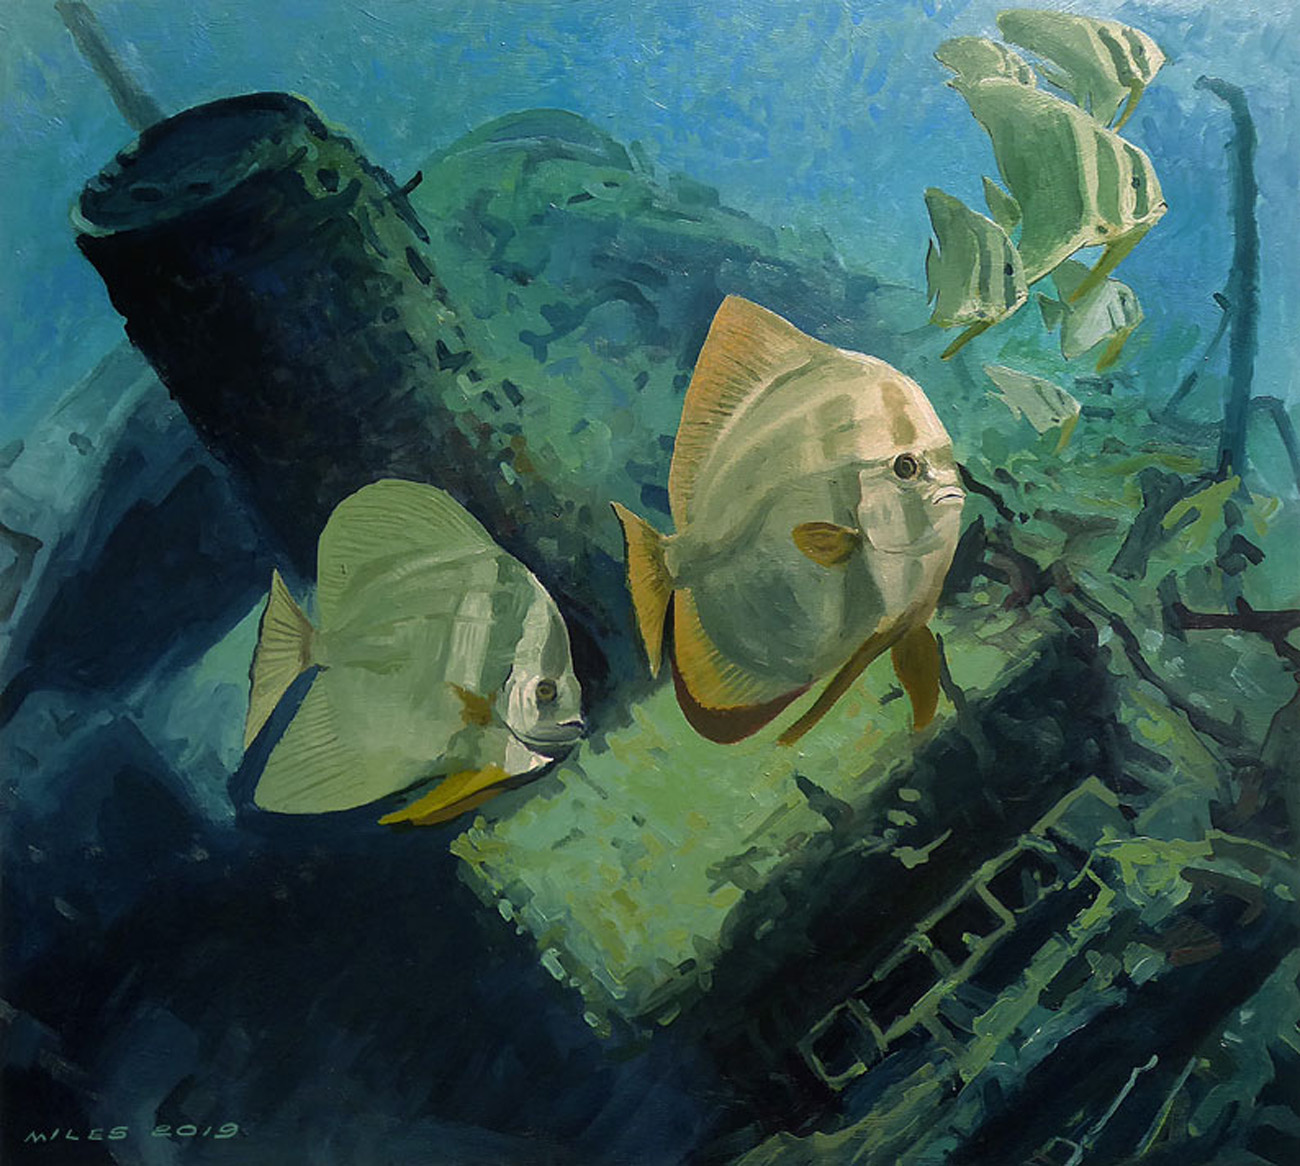 Underwater painting of spadefish Spade fishes above a shipwreck by Gerry Miles